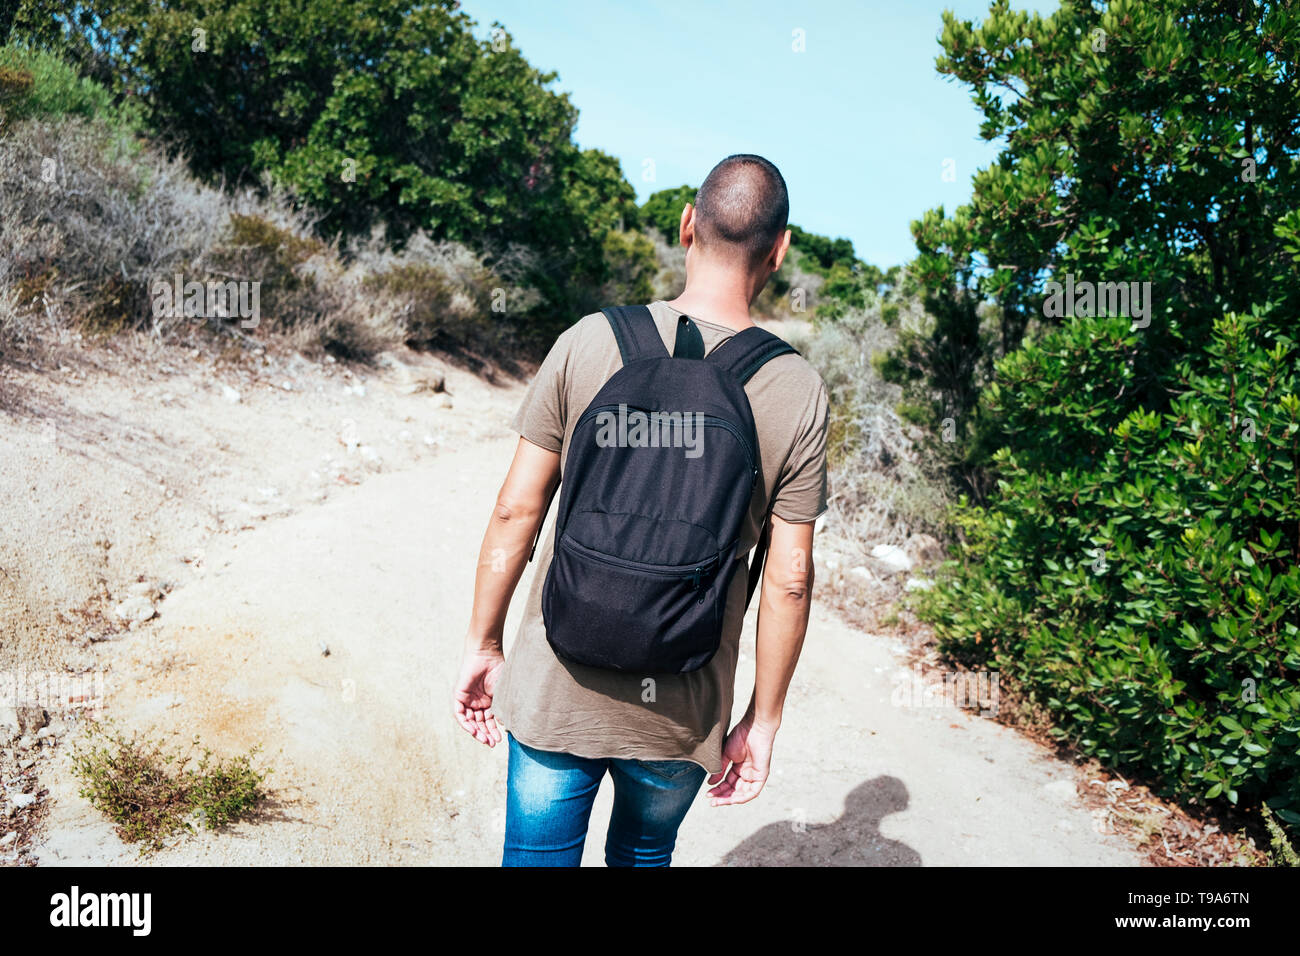 a young caucasian man wearing jeans and a green t-shirt, carrying a backpack, seen from behind, walking by a dirt road - Stock Image